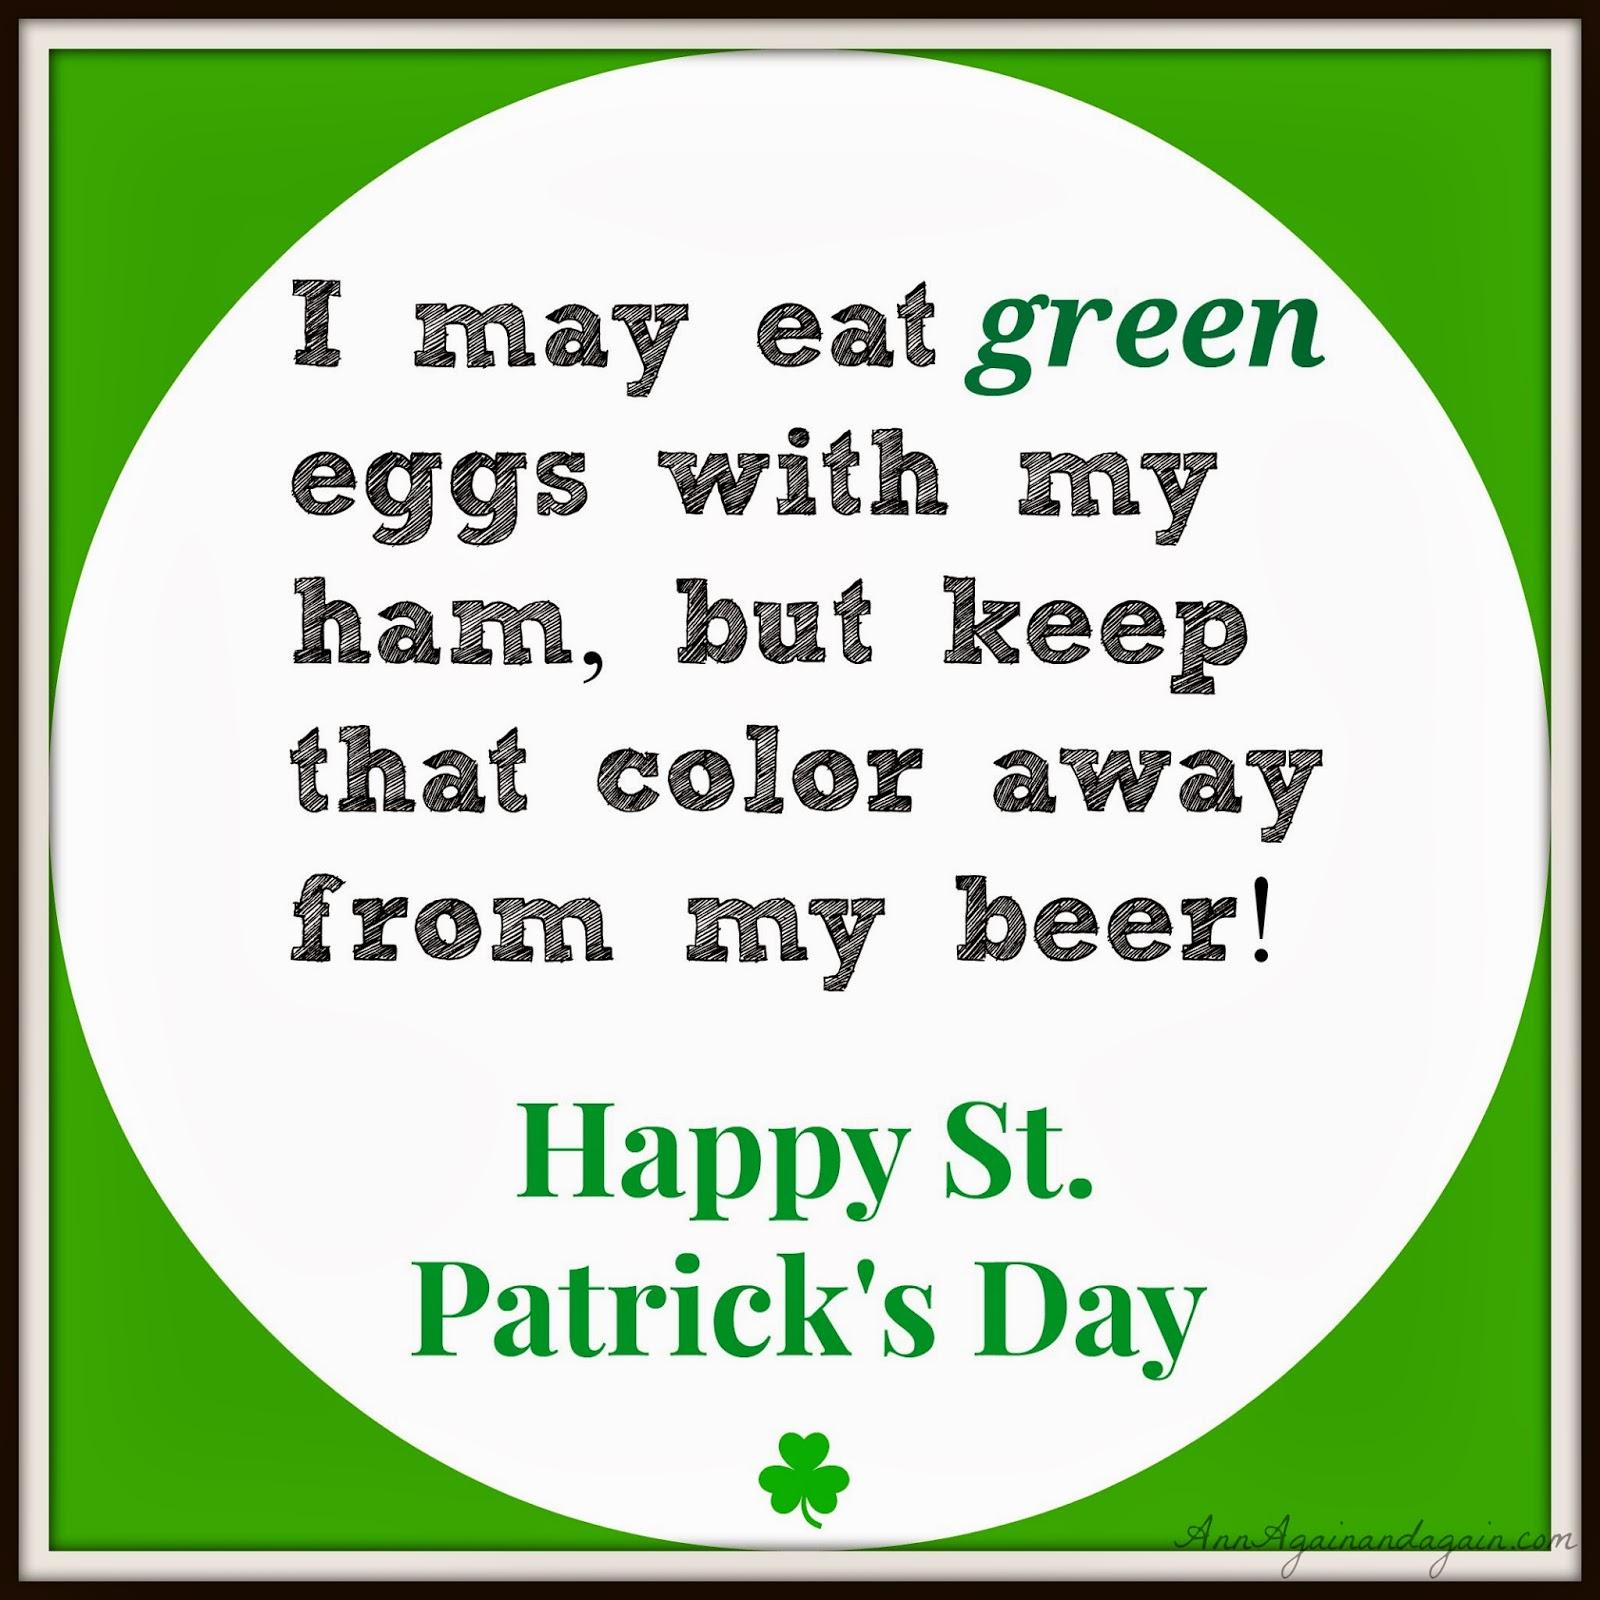 I may eat green eggs with my ham but keep that color away from my beer! - Ann Again and again